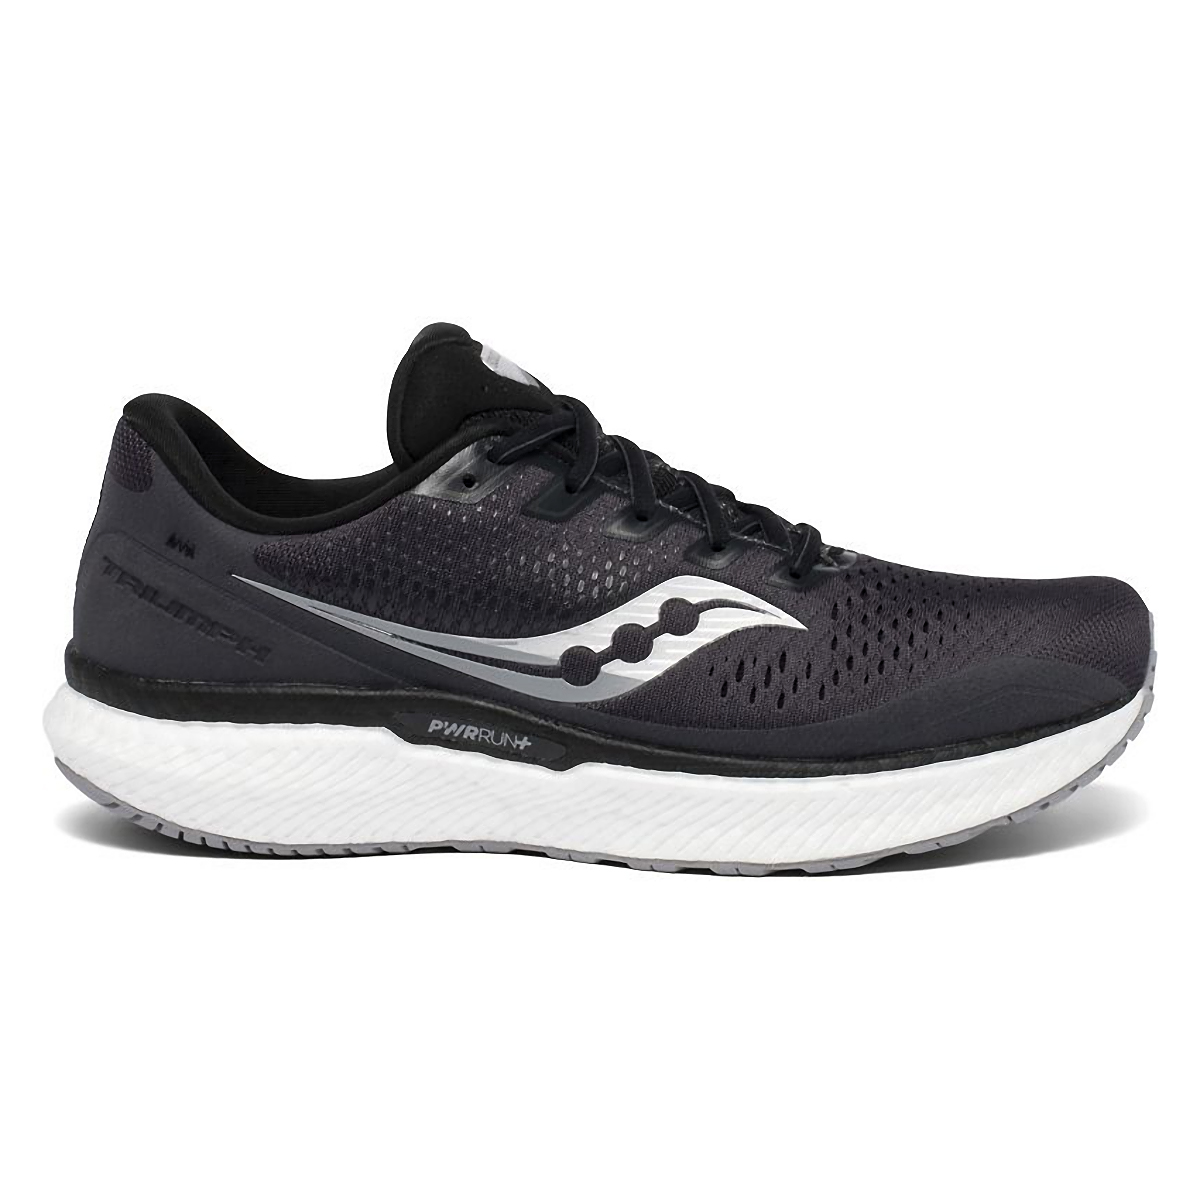 Men's Saucony Triumph 18 Running Shoe